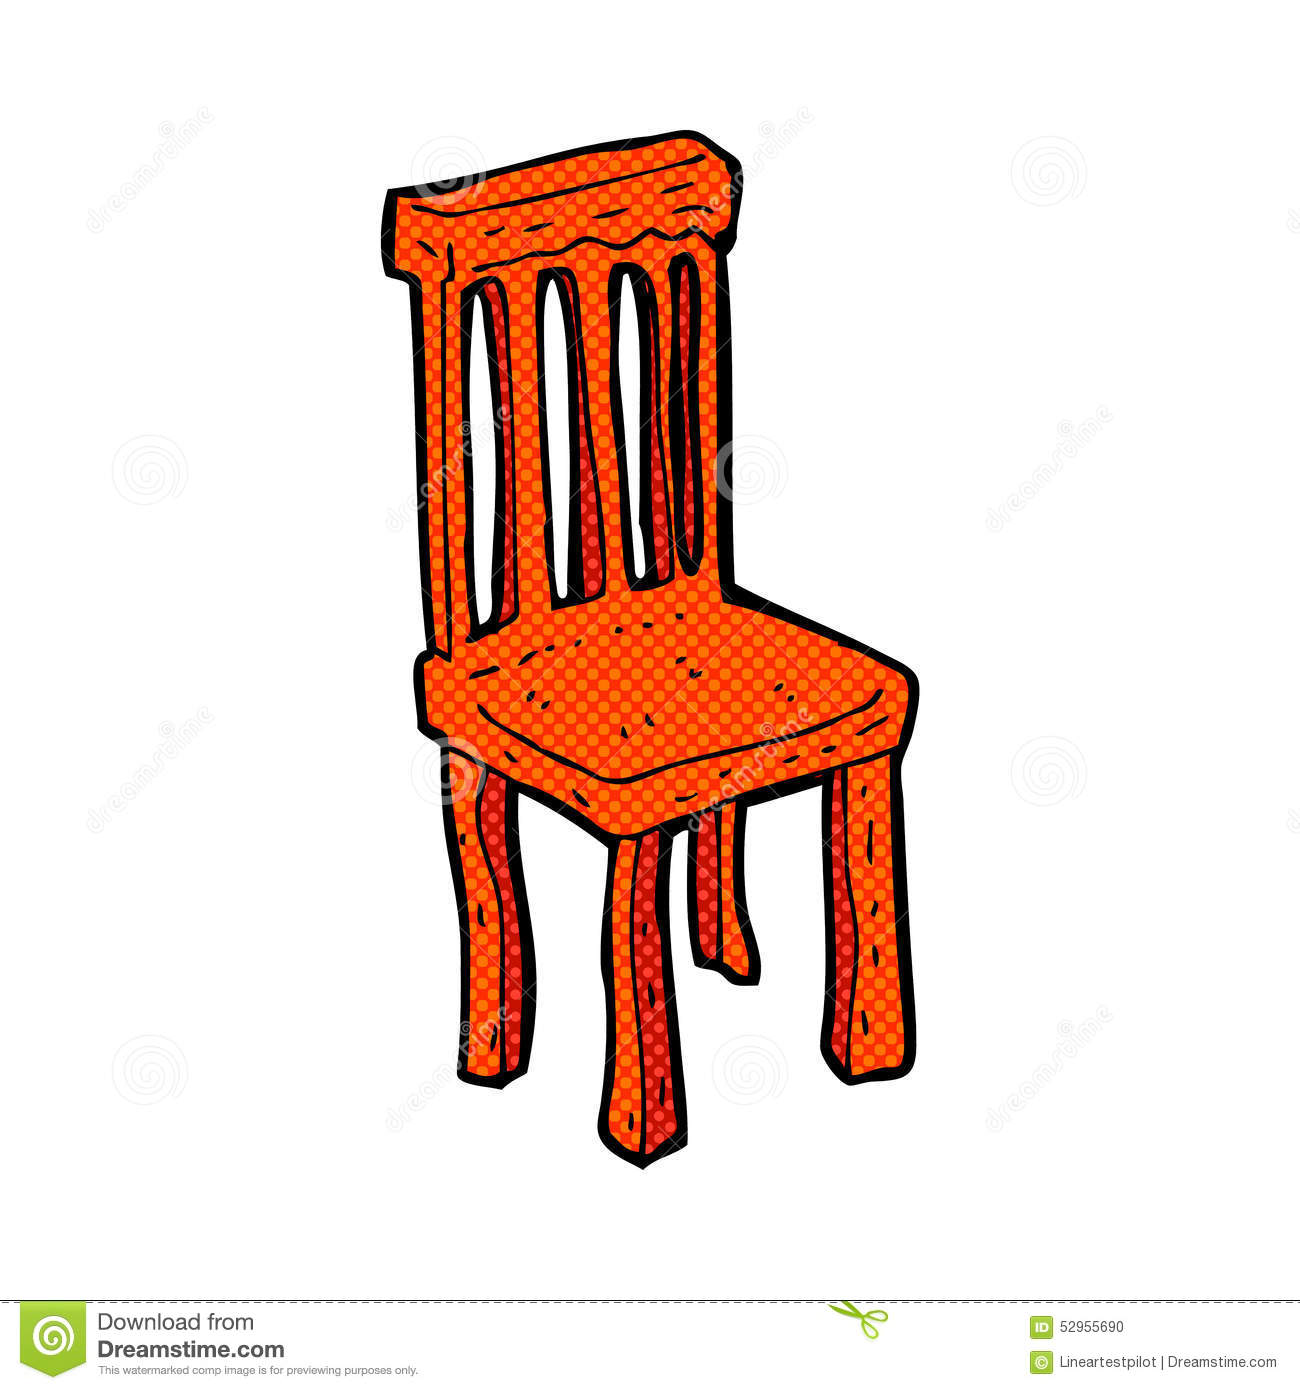 Comic Cartoon Old Wooden Chair Stock Illustration - Image ...